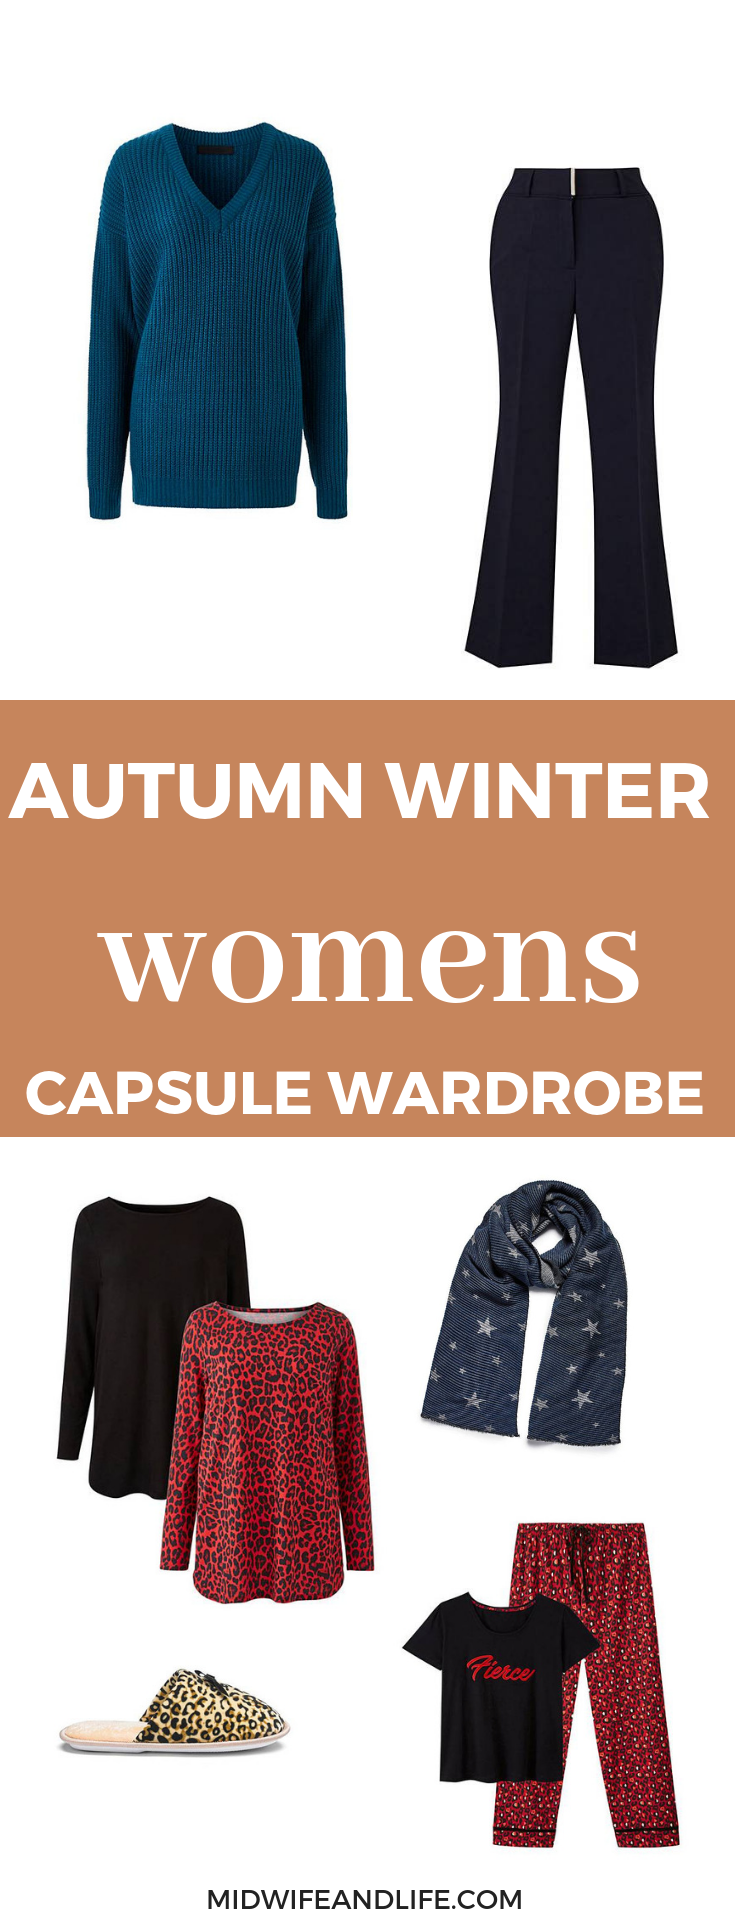 just a few key pieces can make all the difference, get cosy this winter and invest in some clothes and accessories that will see you through to spring. #fashion #over40 #plussize #brands #budget #capsulewardrobe #autumn #winter